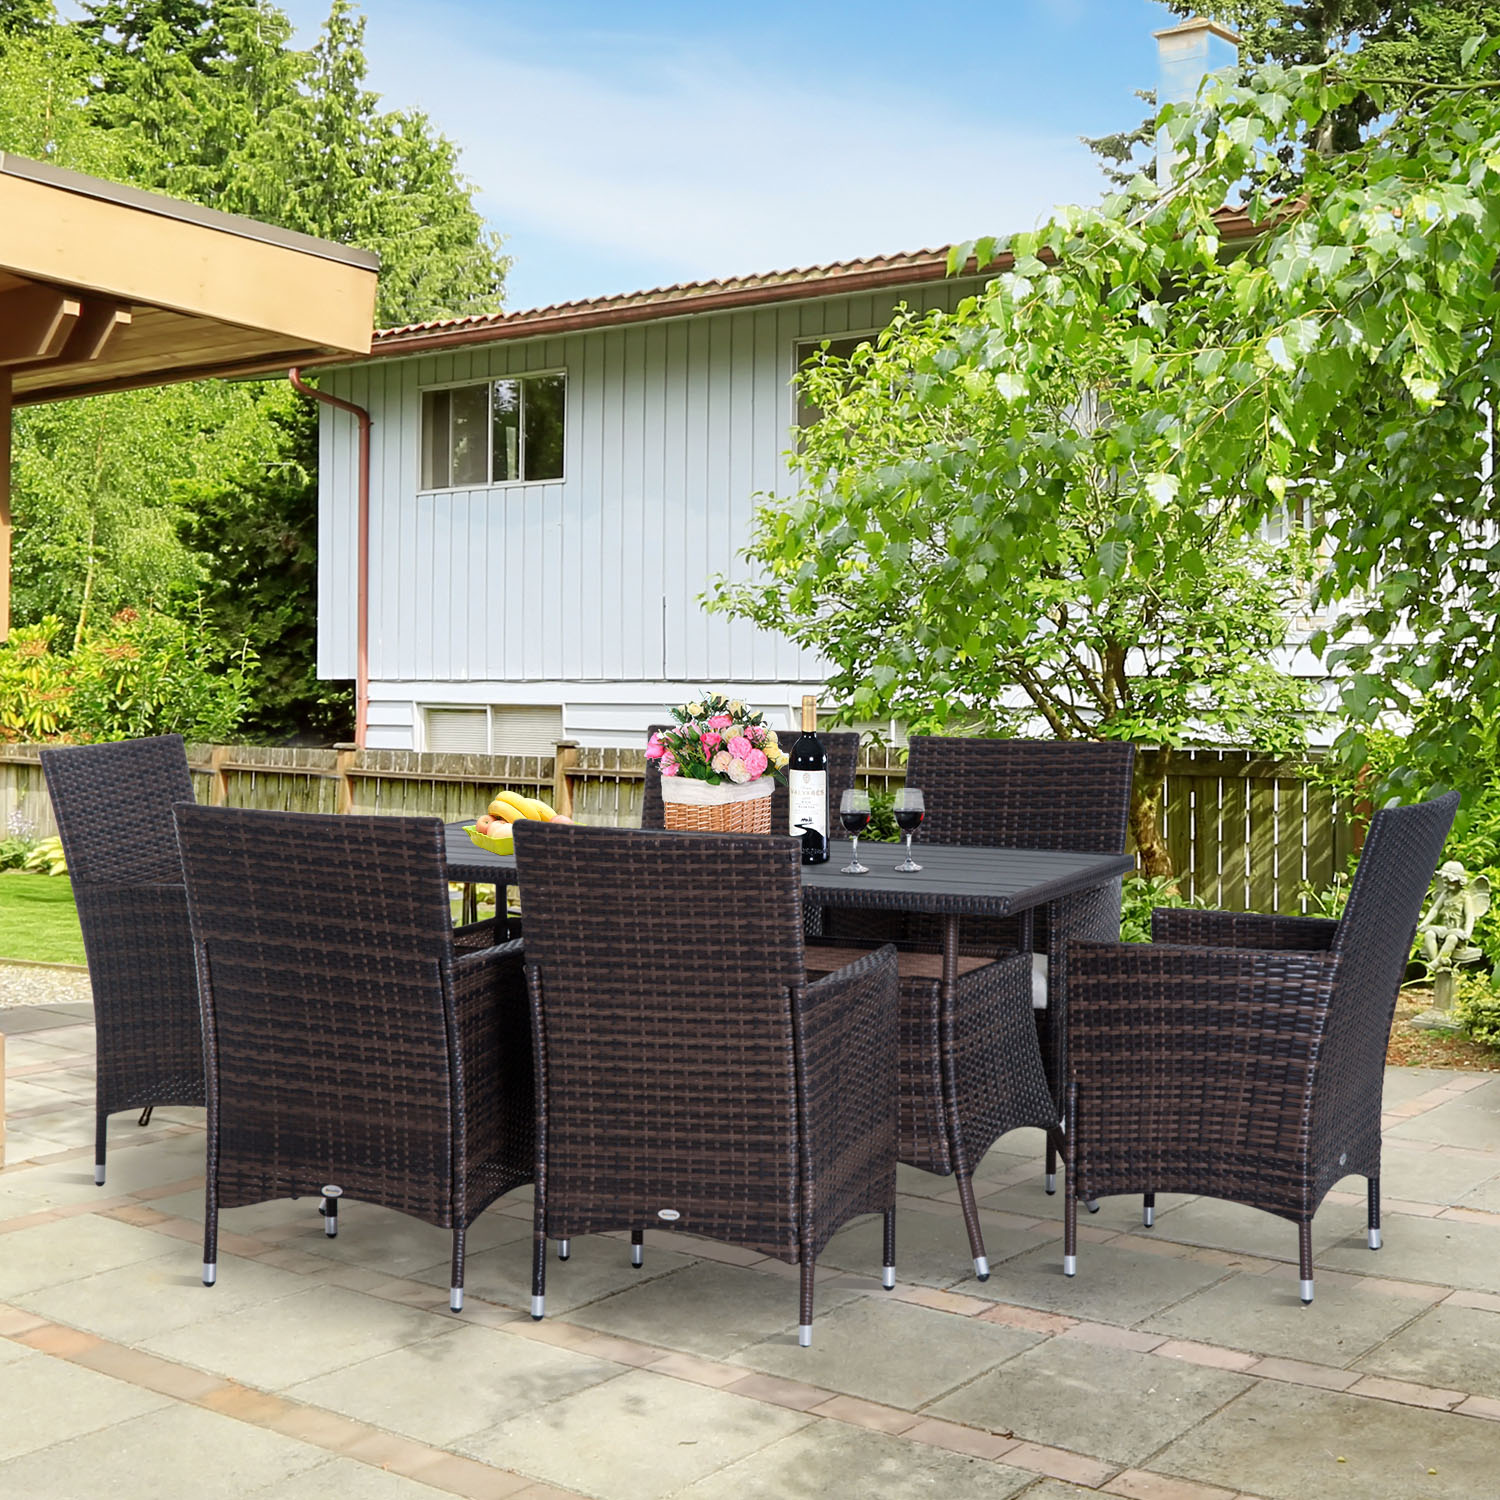 Image of CAD $739.99 Outsunny 7 Pieces Rattan Dining Set Garden Wicker Furniture Slatted Tabletop Deck / 7ps Outdoor Patio Backyard Slat Top Table and Chair Brown Canada 95509799333